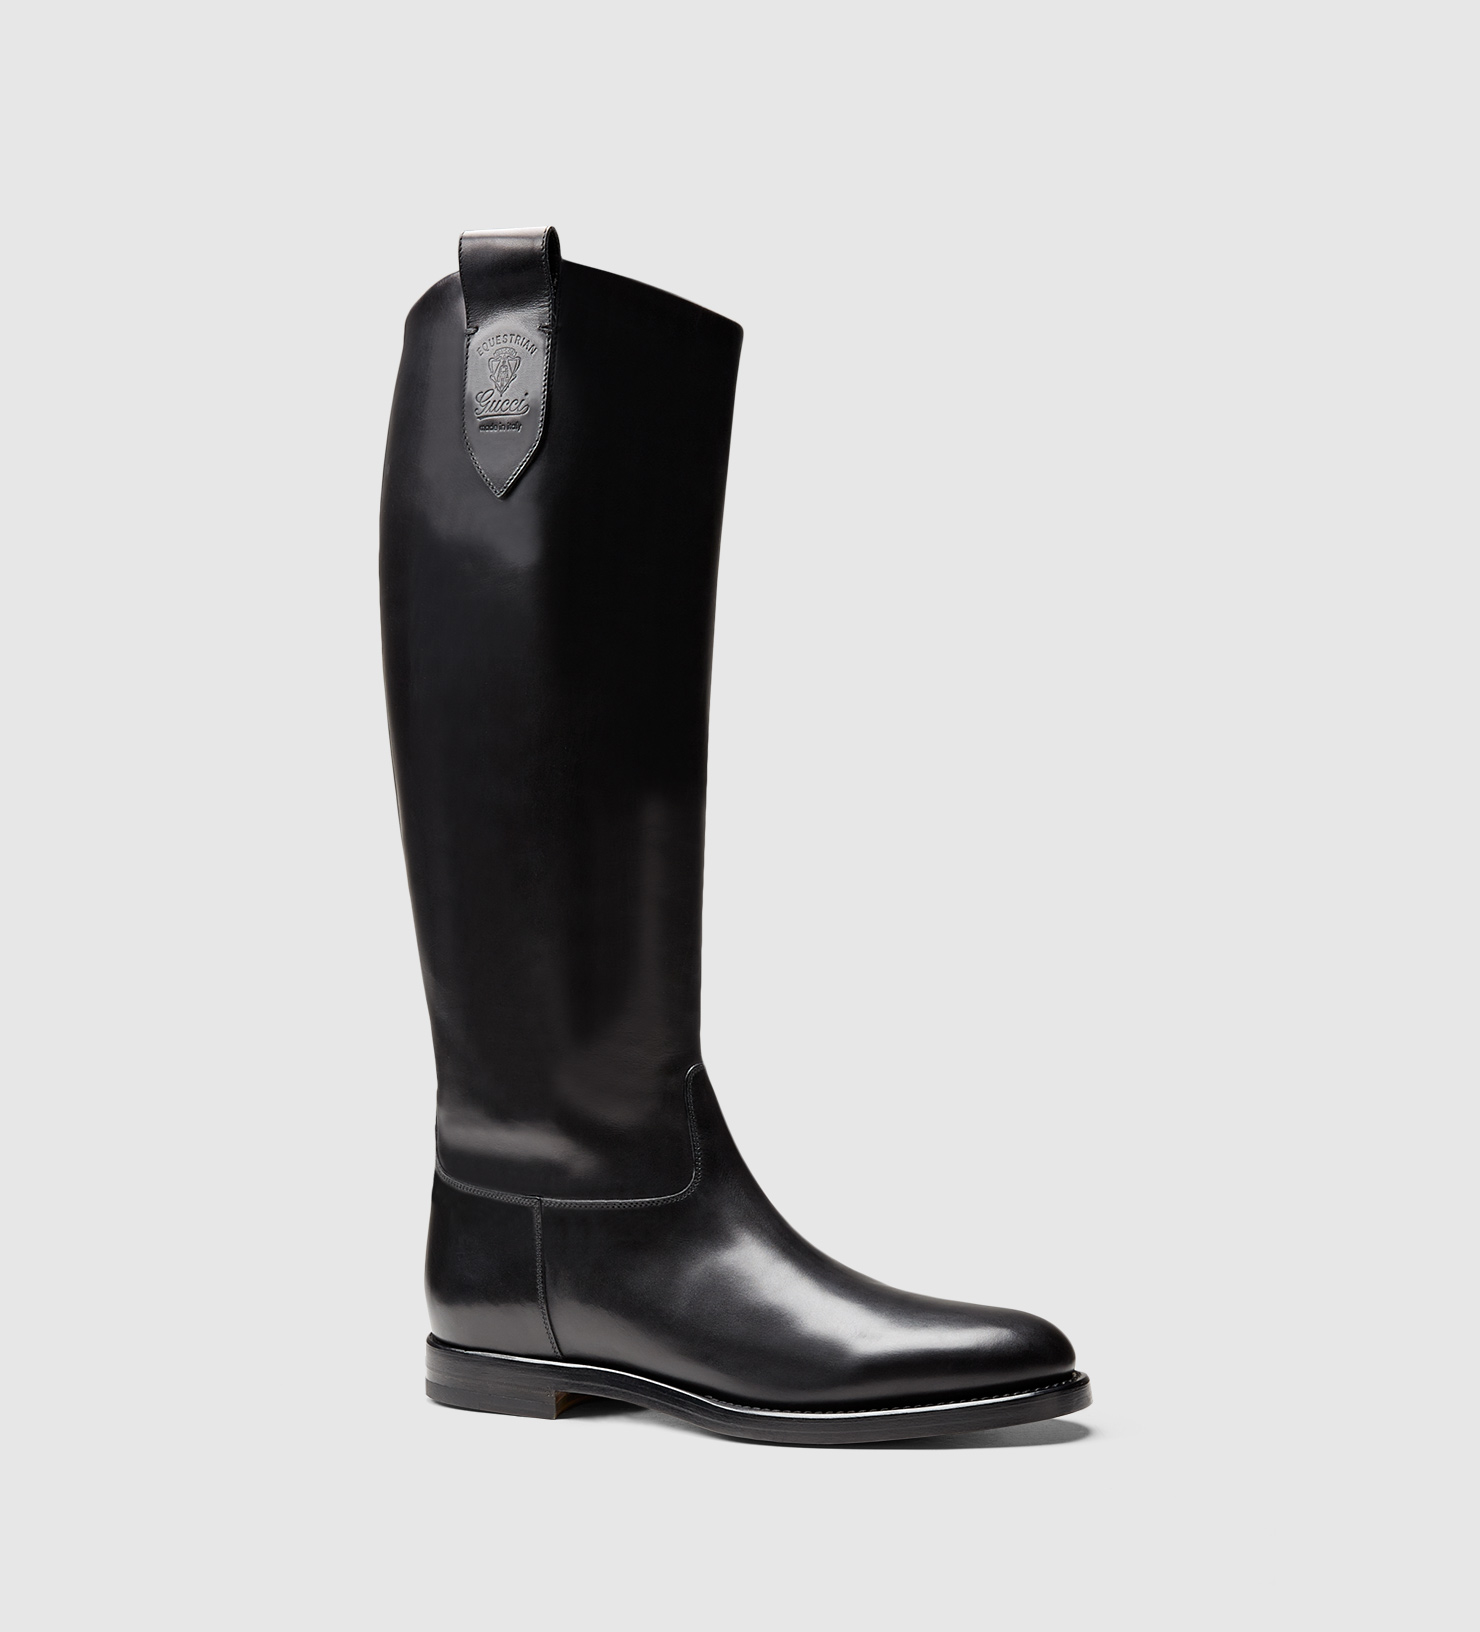 Gucci Men's Leather Riding Boot From Equestrian Collection in ...